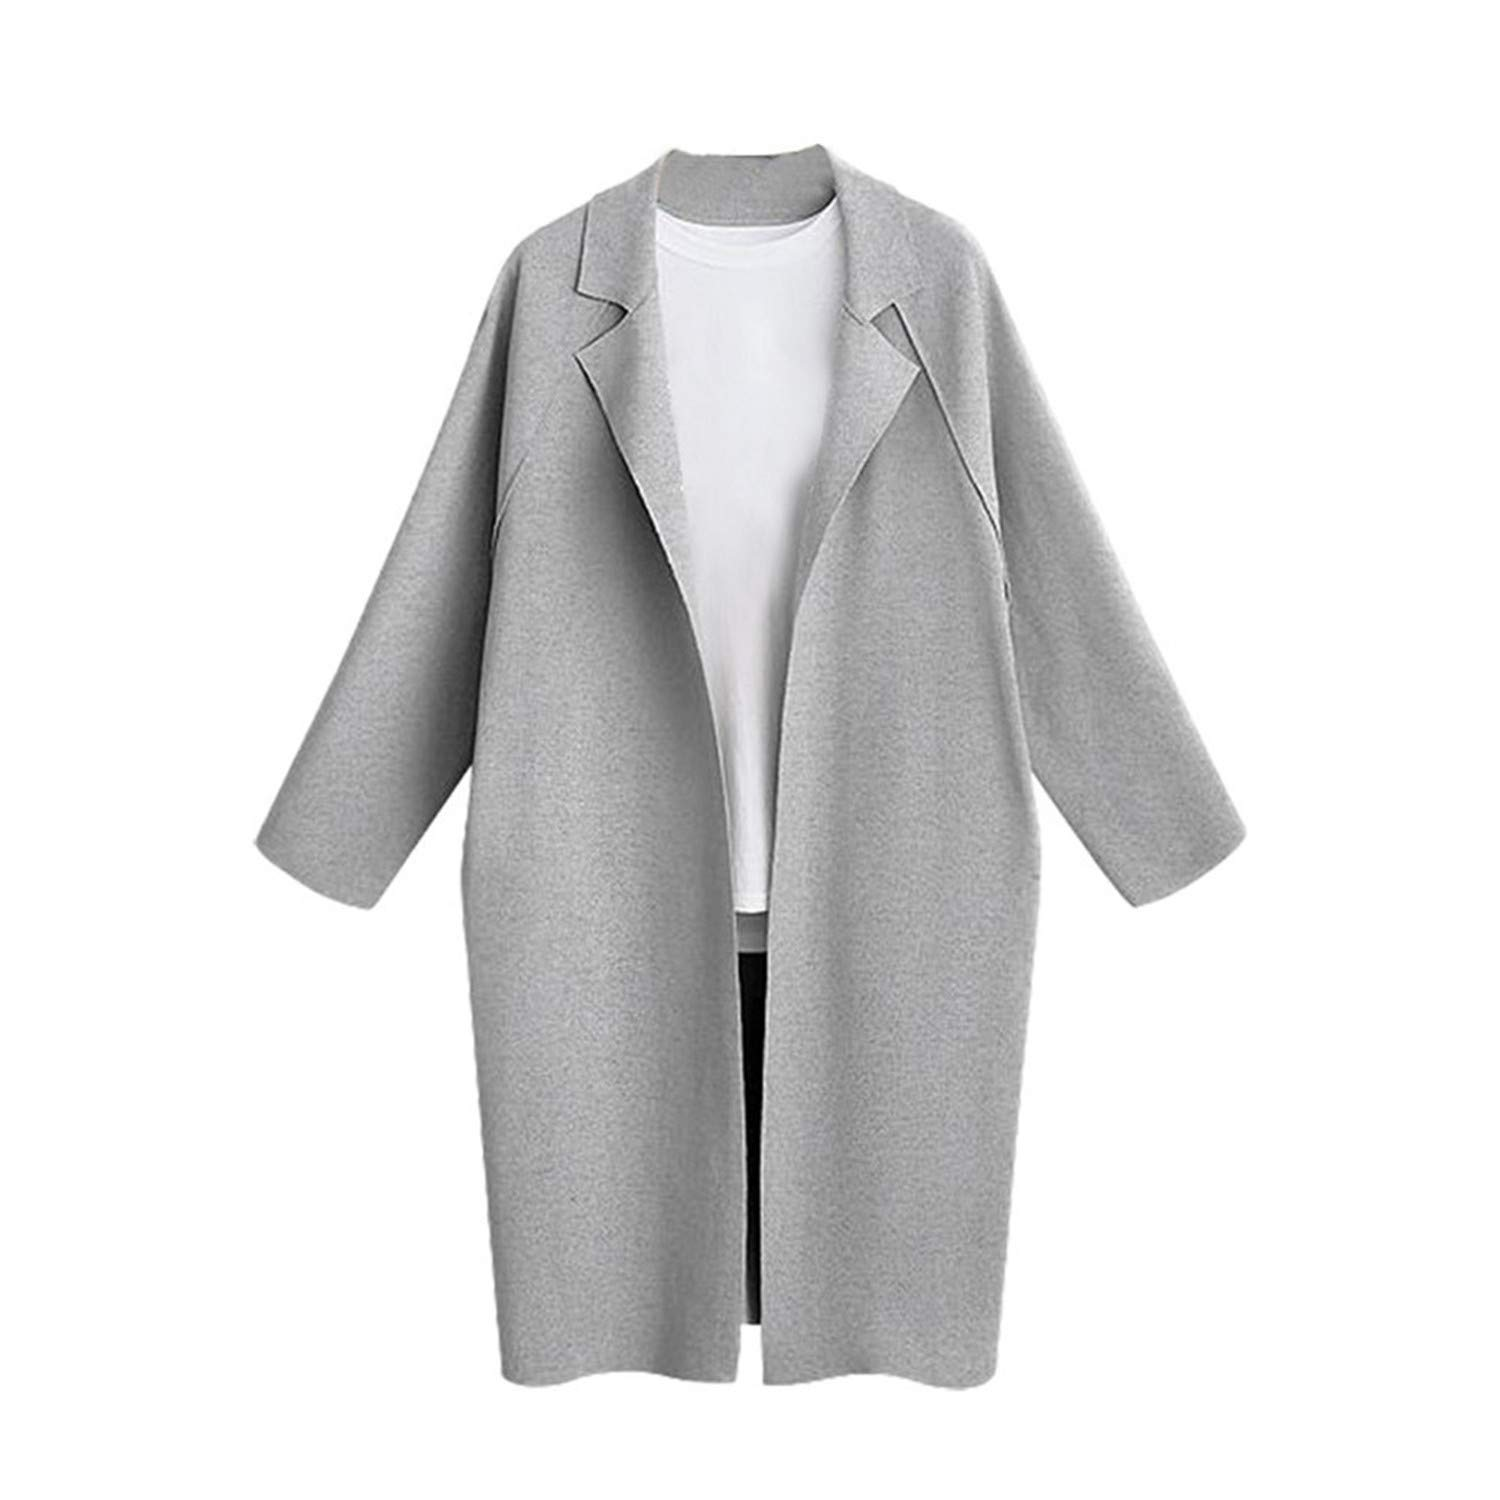 Amazon.com: Ashley Lauren Mia Winter Jackets New Women Wool Blend Coat Ladies Loose Solid Wide Lapel Oversize: Clothing